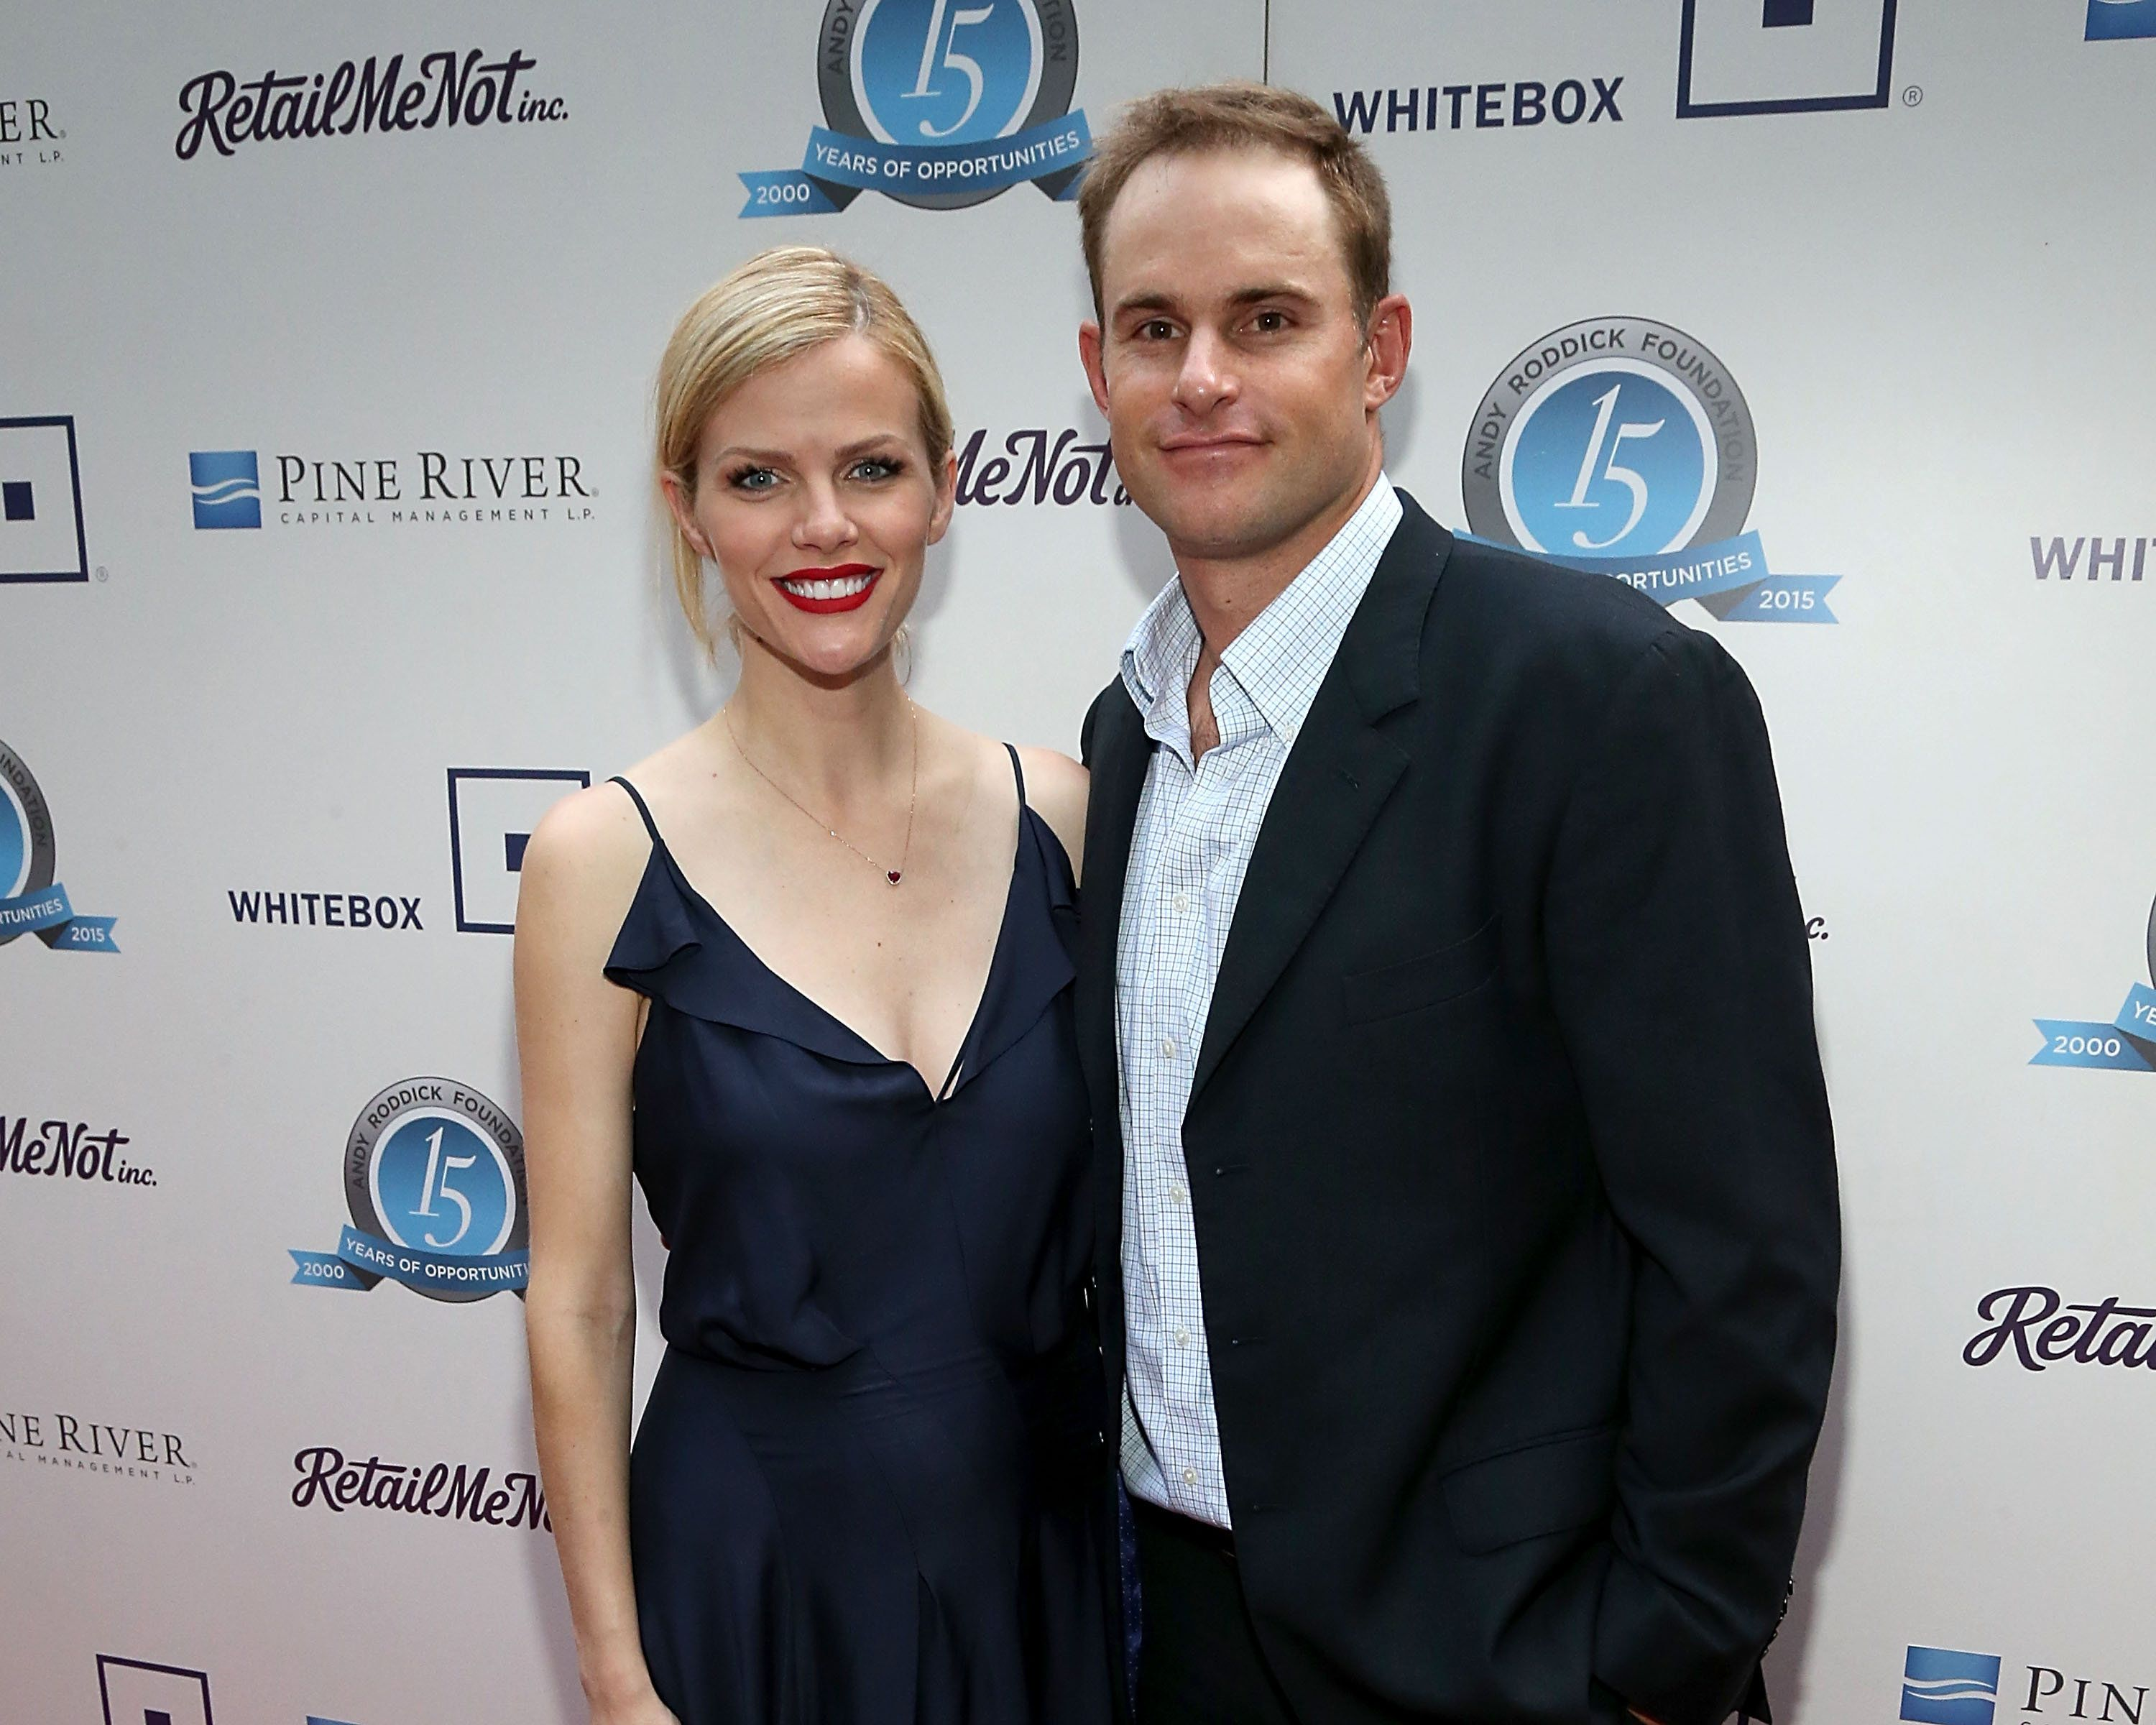 AUSTIN, TX - MAY 04:  Newly expecting couple Brooklyn Decker (L) and Andy Roddick attend the 10th Annual Andy Roddick Foundation Gala at ACL Live on May 4, 2015 in Austin, Texas.  (Photo by Gary Miller/Getty Images)